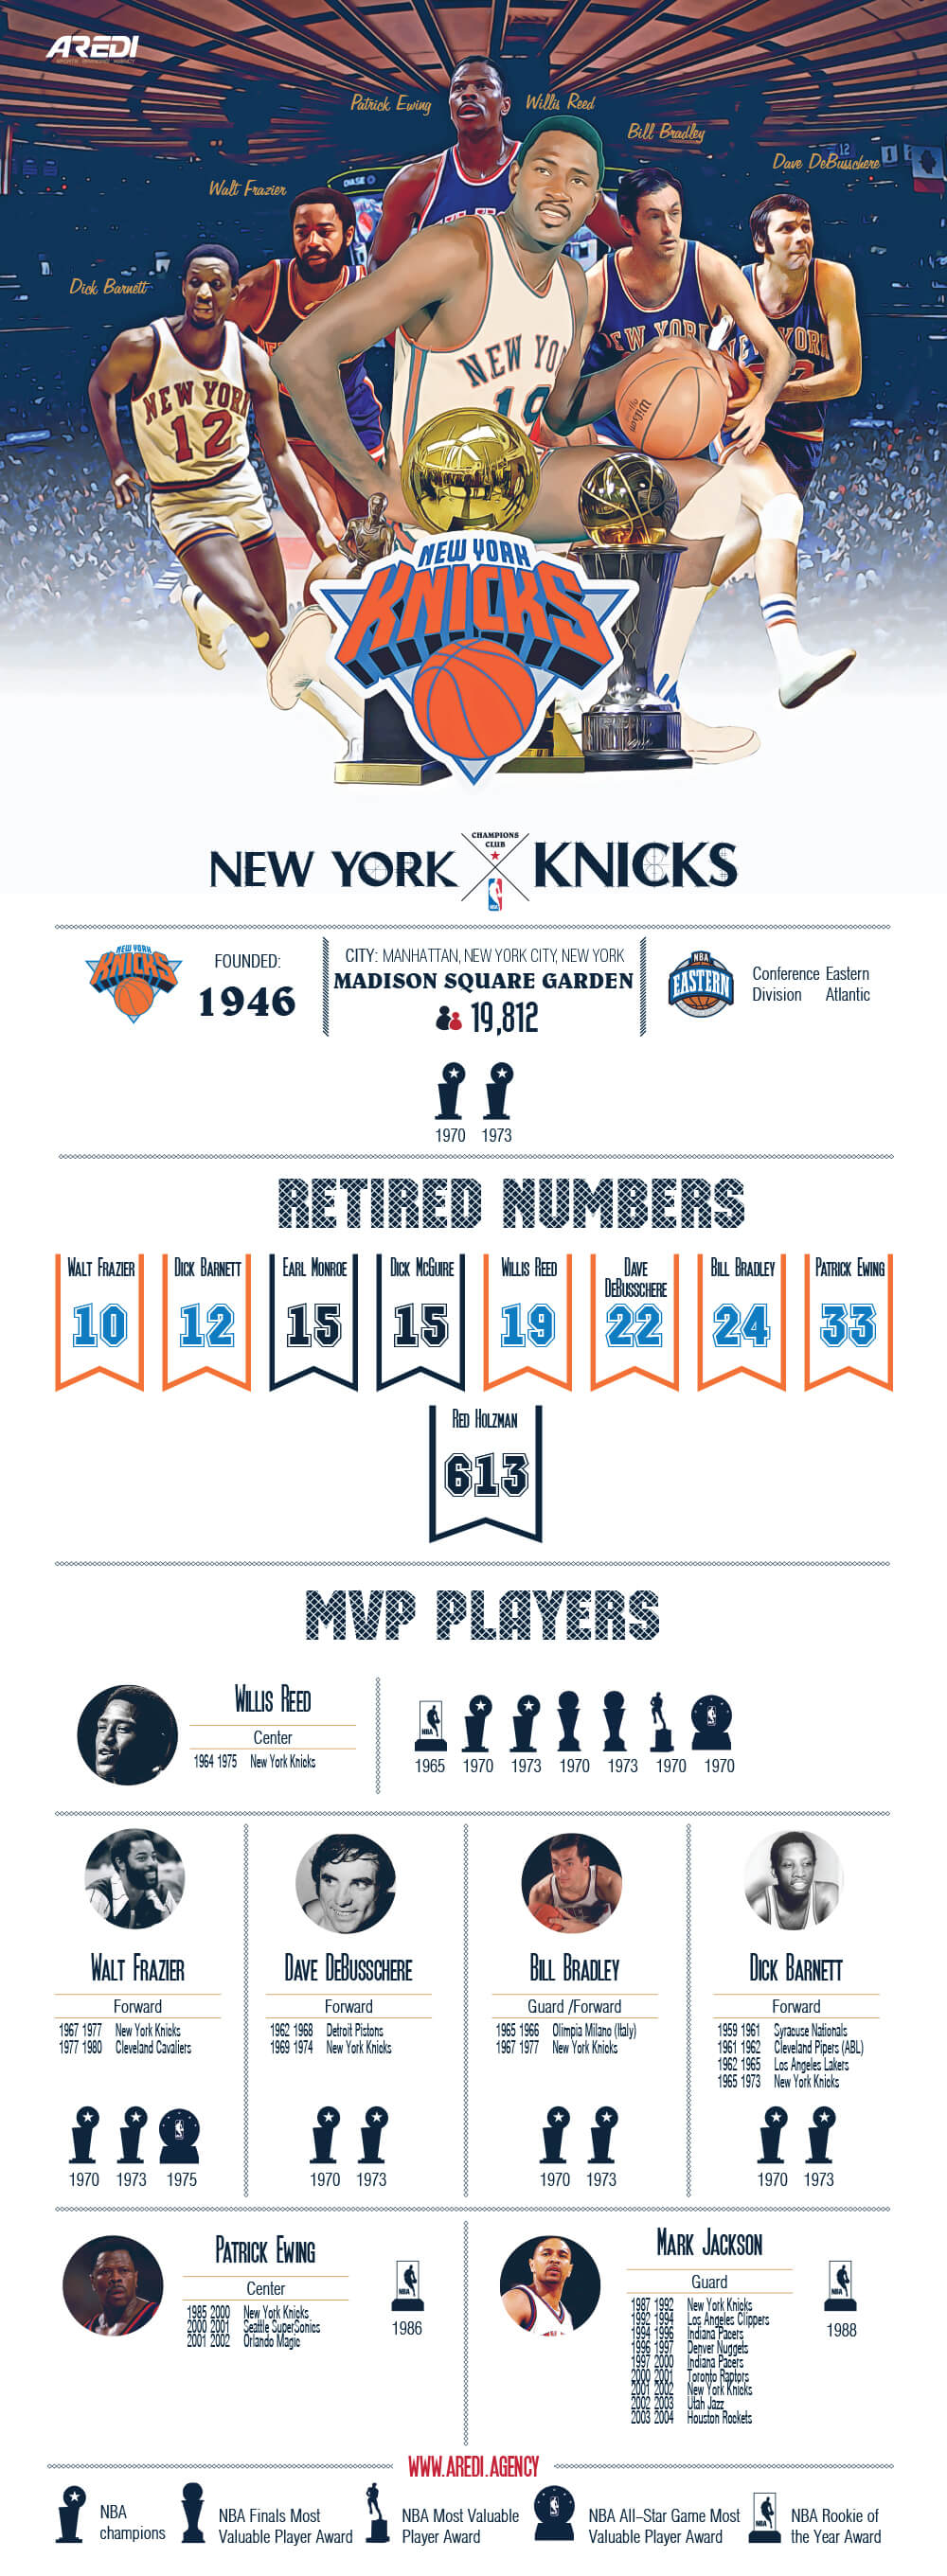 The best players in the history of the New York Knicks